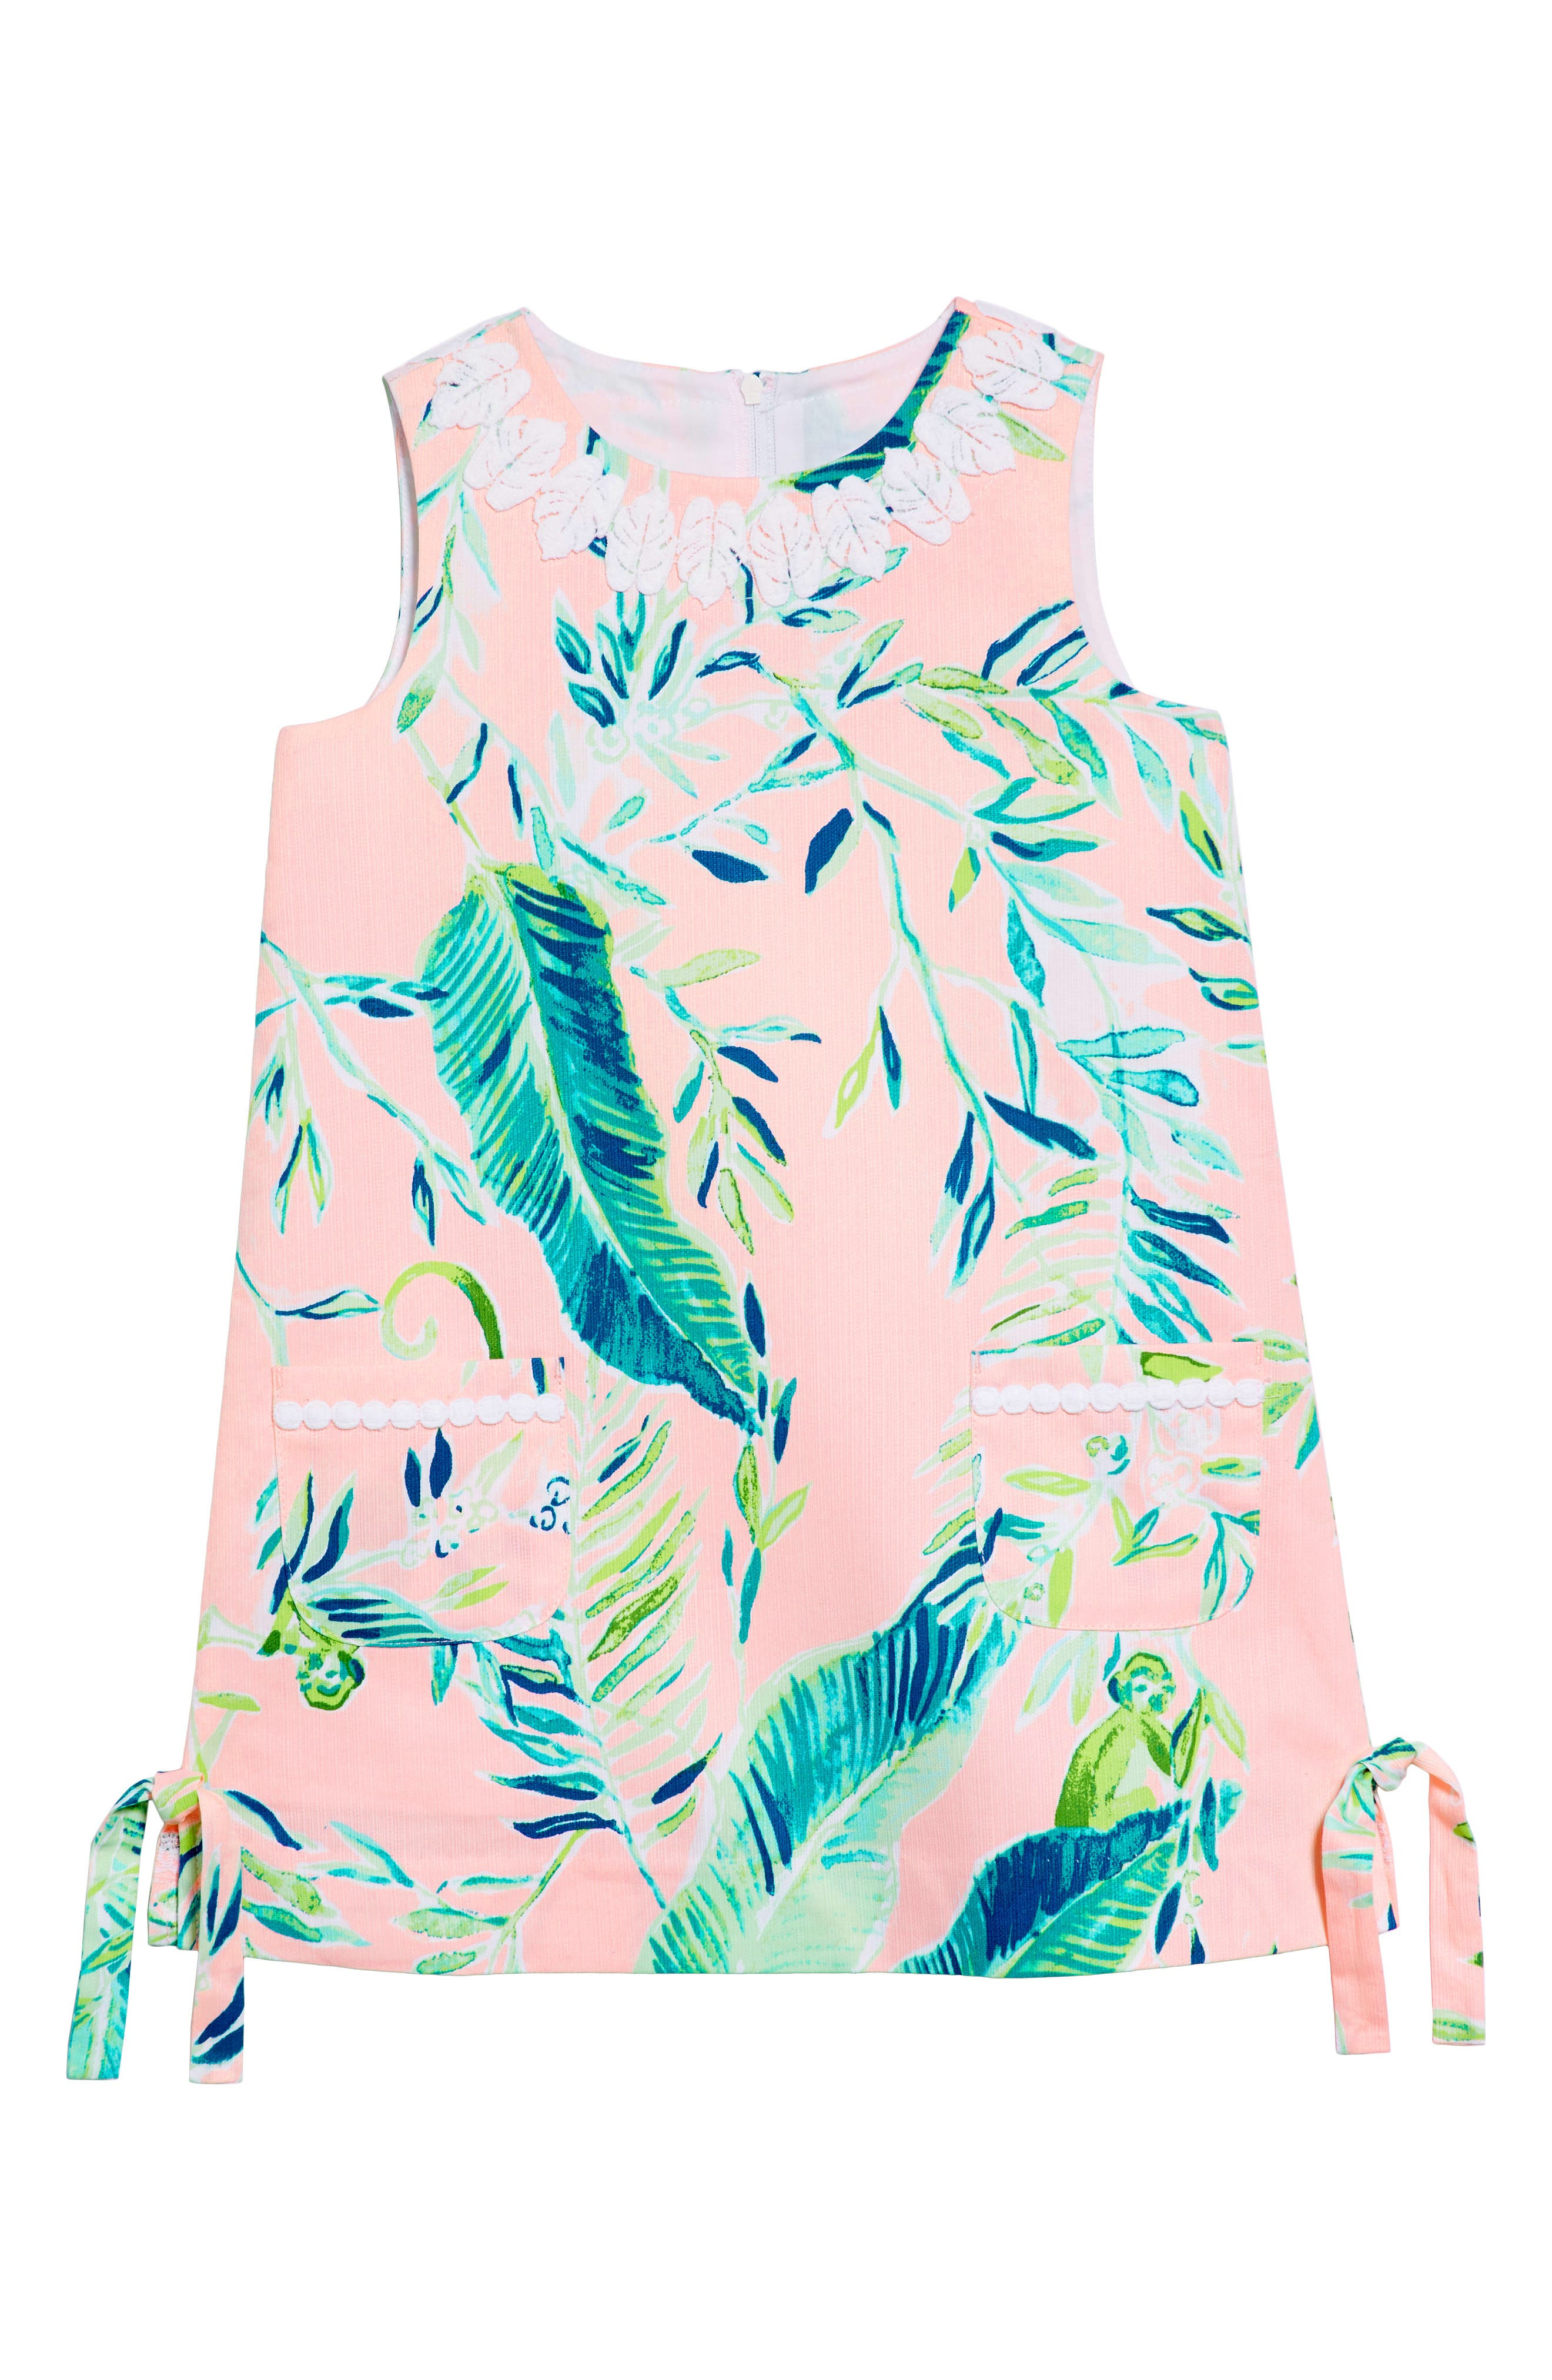 Little Lilly Classic Shift Dress,                             Main thumbnail 1, color,                             CORAL REEF TINT CHIMPOISERIE